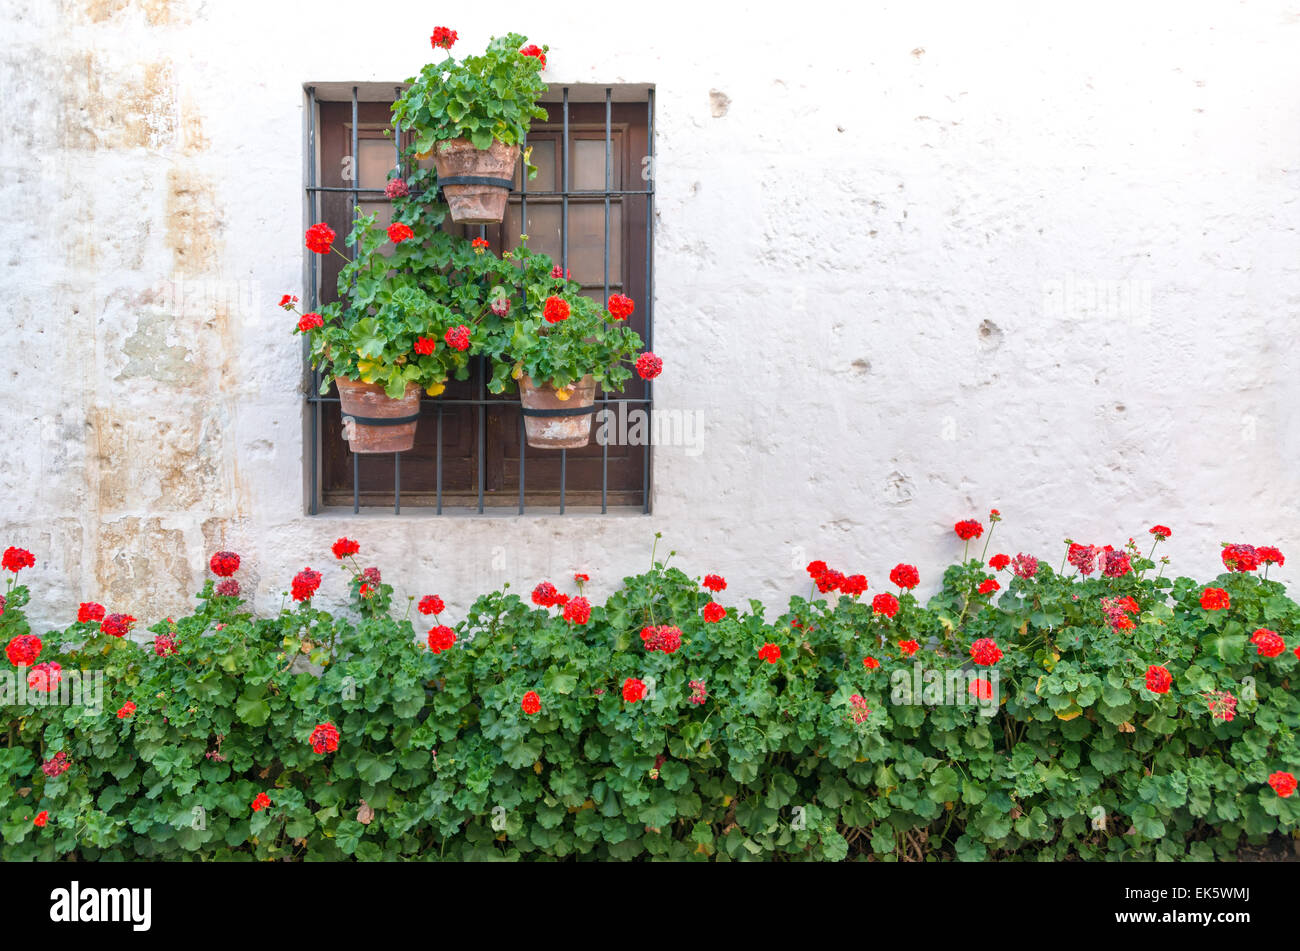 Red flowers adorning a white wall in the historic Santa Catalina Monastery in Arequipa, Peru - Stock Image